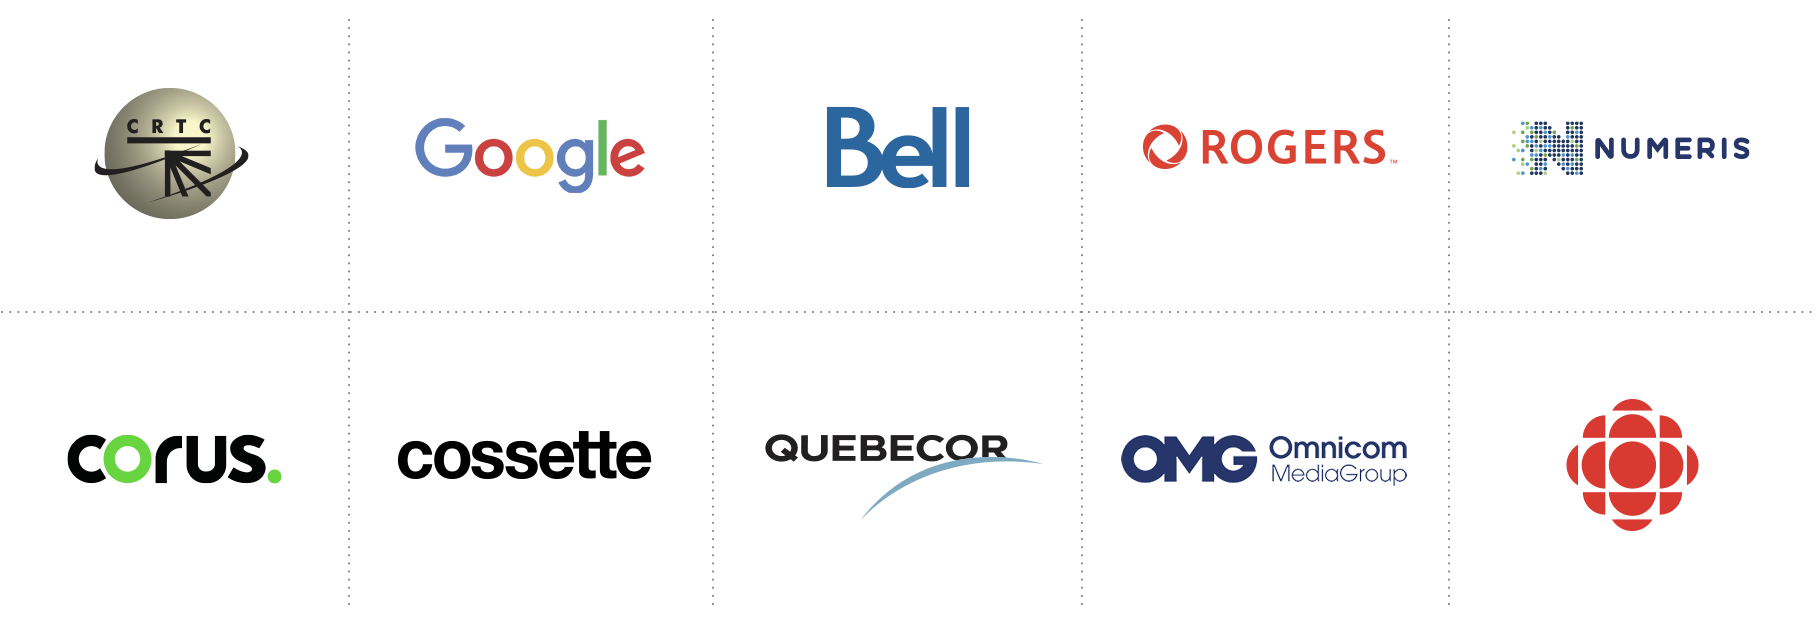 Apple, Google, Bell, Rogers, Videotron, Corus, CTV, touche, timespace, CBC